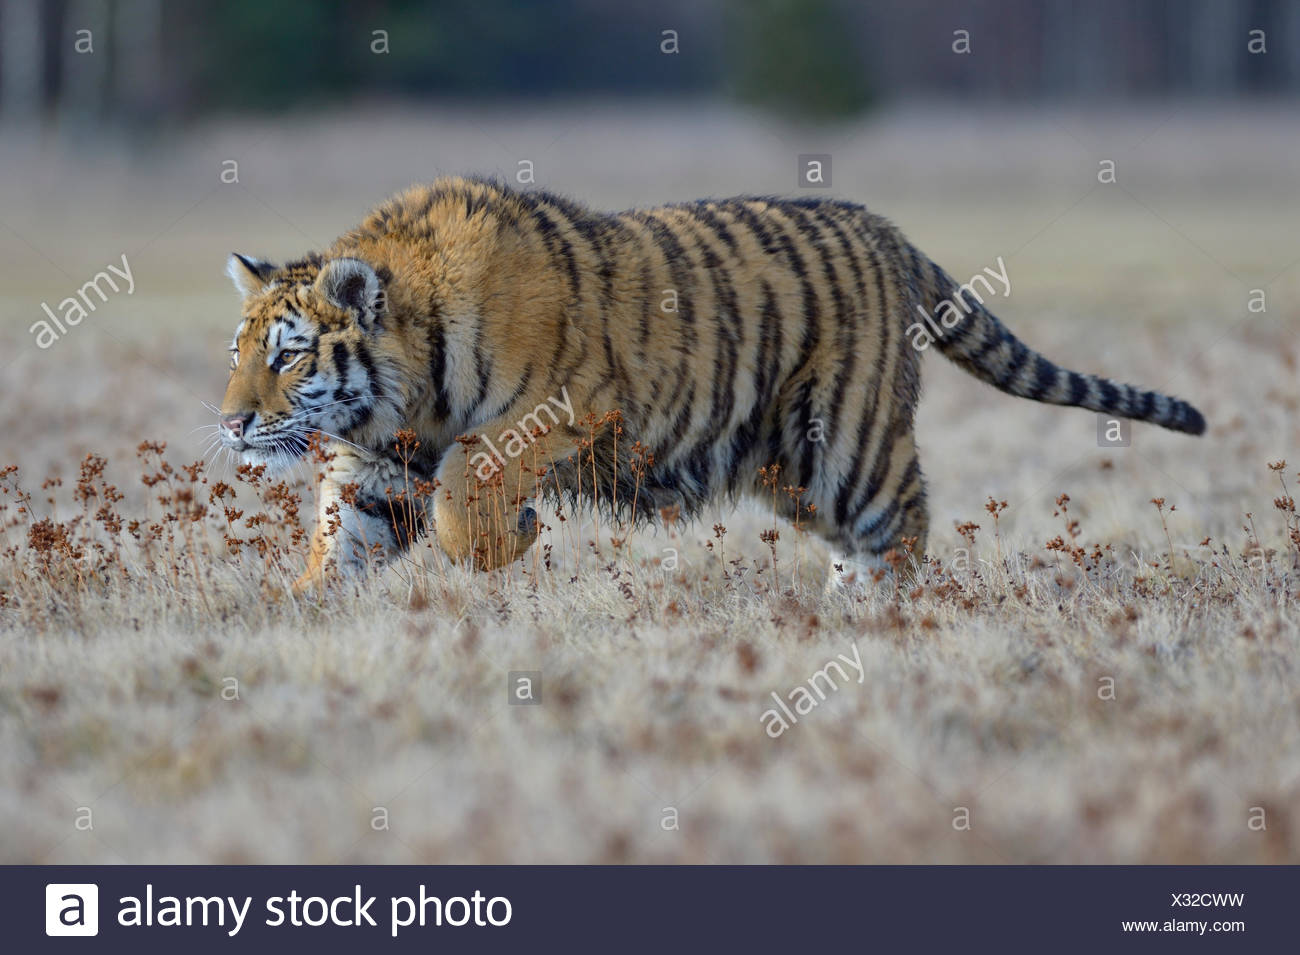 Siberian tiger (Panthera tigris altaica), jumping in a nearby meadow, captive, Moravia, Czech Republic - Stock Image